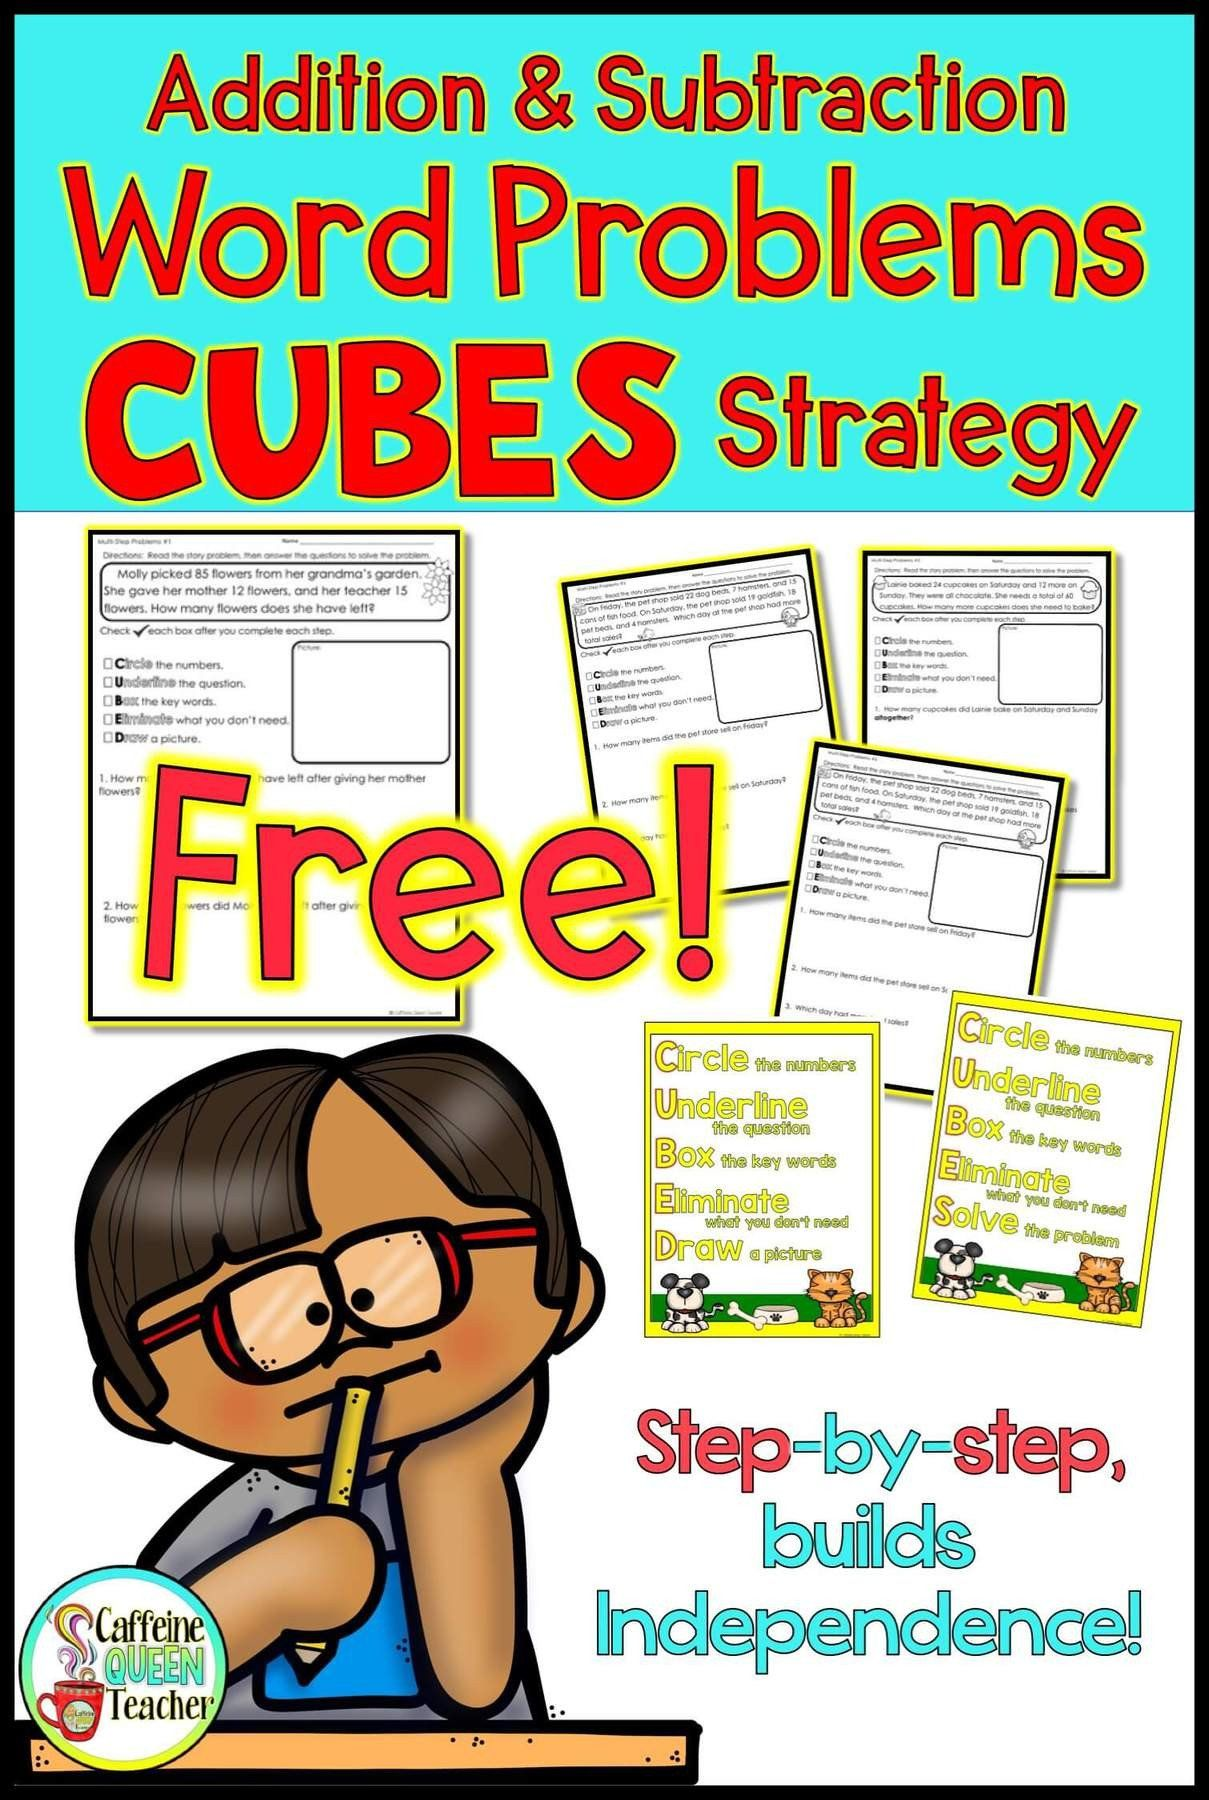 Free Problem Solving Worksheets Free Worksheet Addition And Subtraction Word Problems In 2021 Problem Solving Worksheet Subtraction Word Problems Free Problem Solving [ 1800 x 1209 Pixel ]